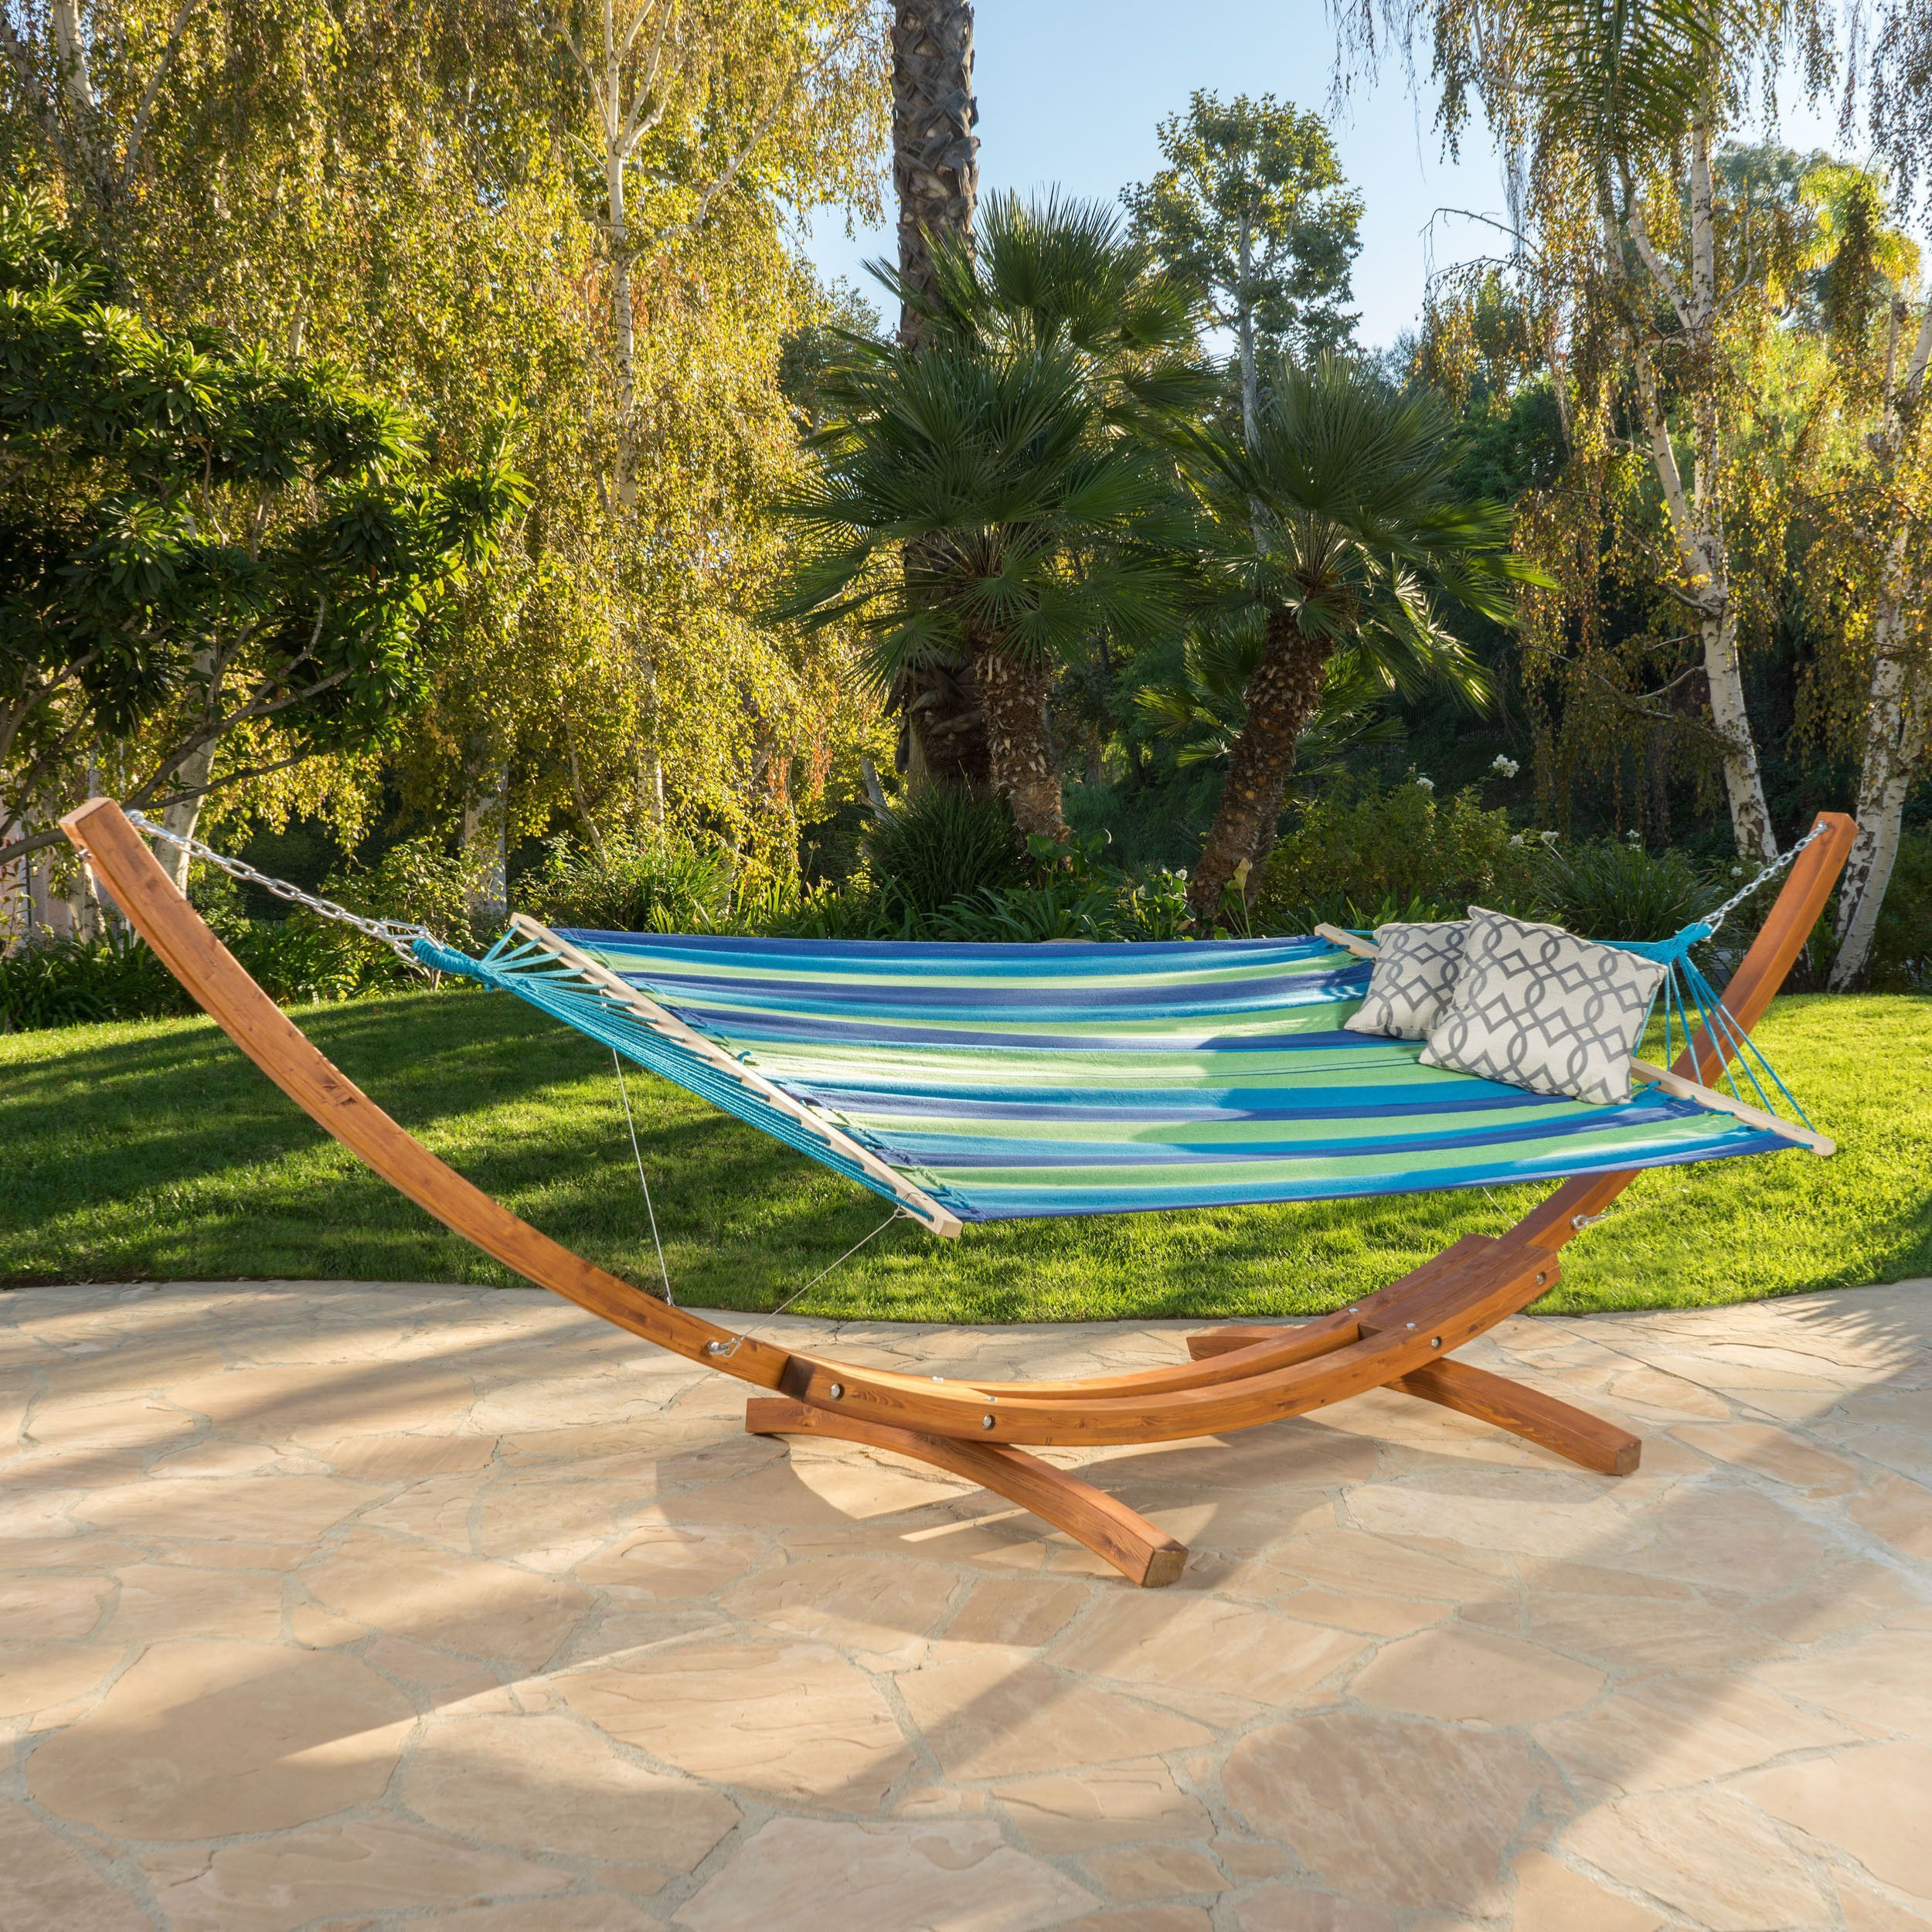 Ad malibu blue green teal stripe outdoor hammock with base hammocks